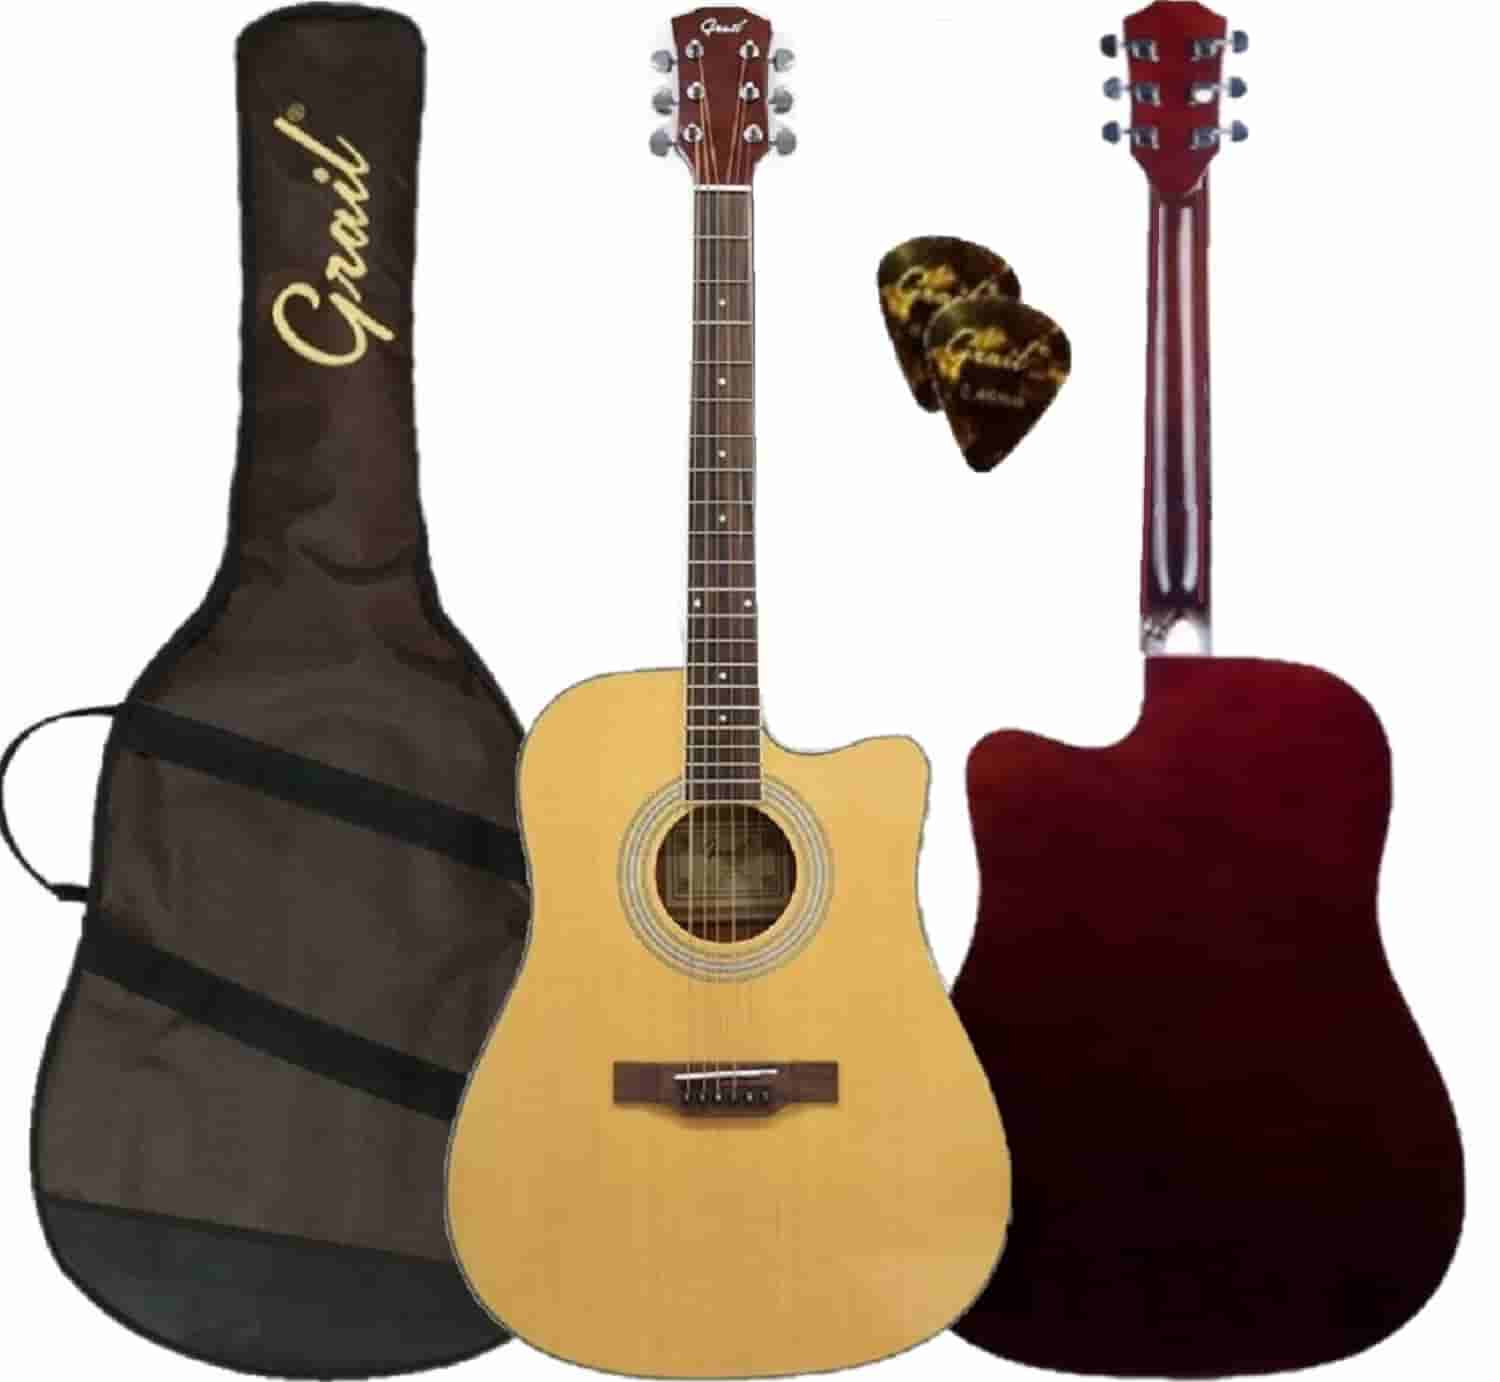 Grail Aspire D120C Acoustic Guitar Cutaway Spruce Top (FREE Water Resistant Padded Gig Bag & 2 Picks)